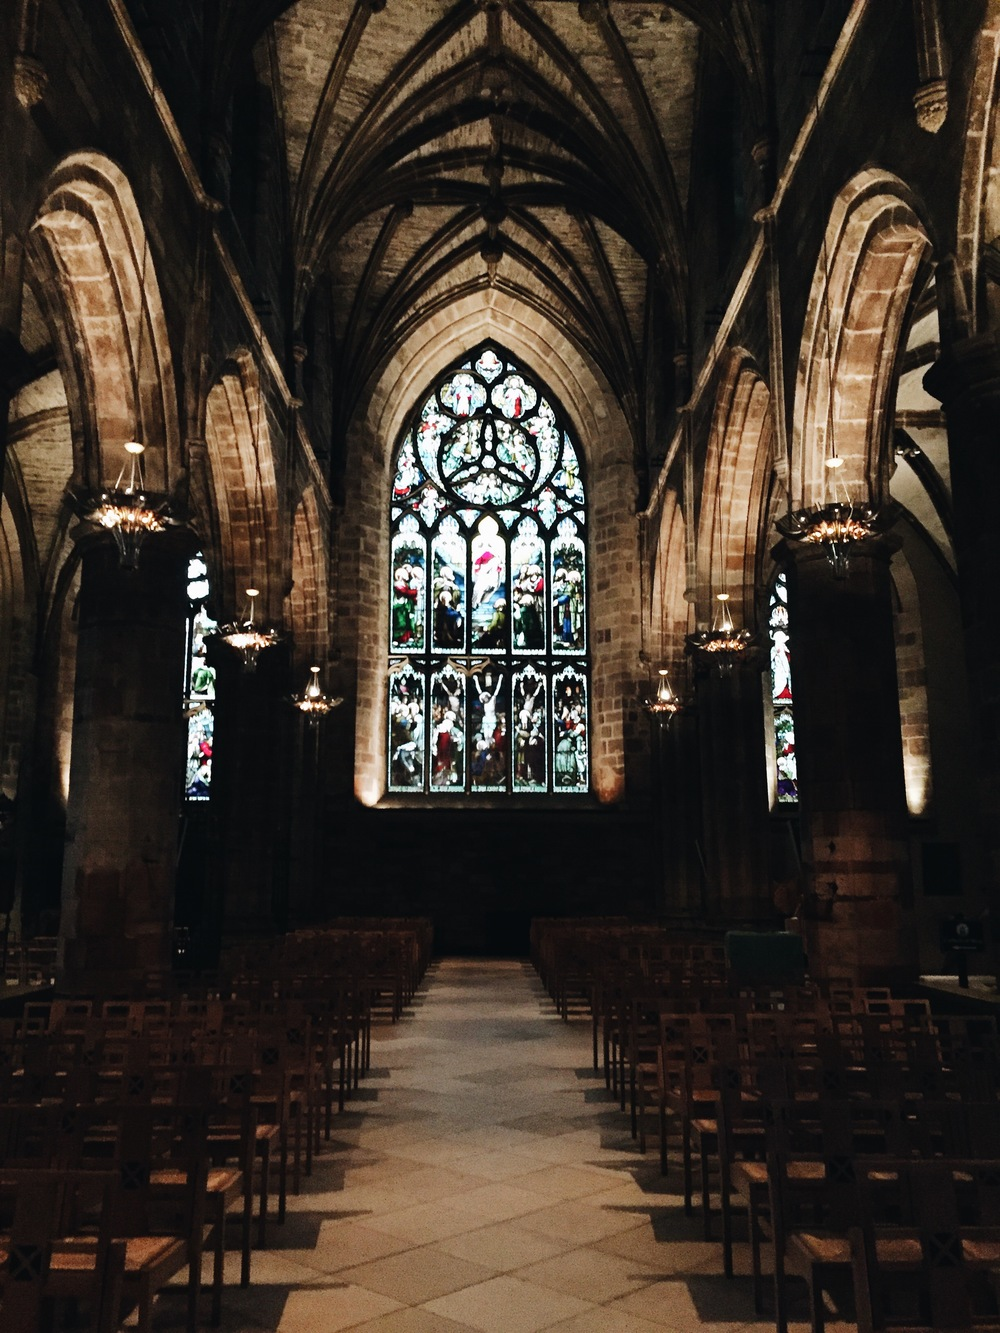 SOA_Edinburgh-Scotland-st-giles-cathedral.jpg